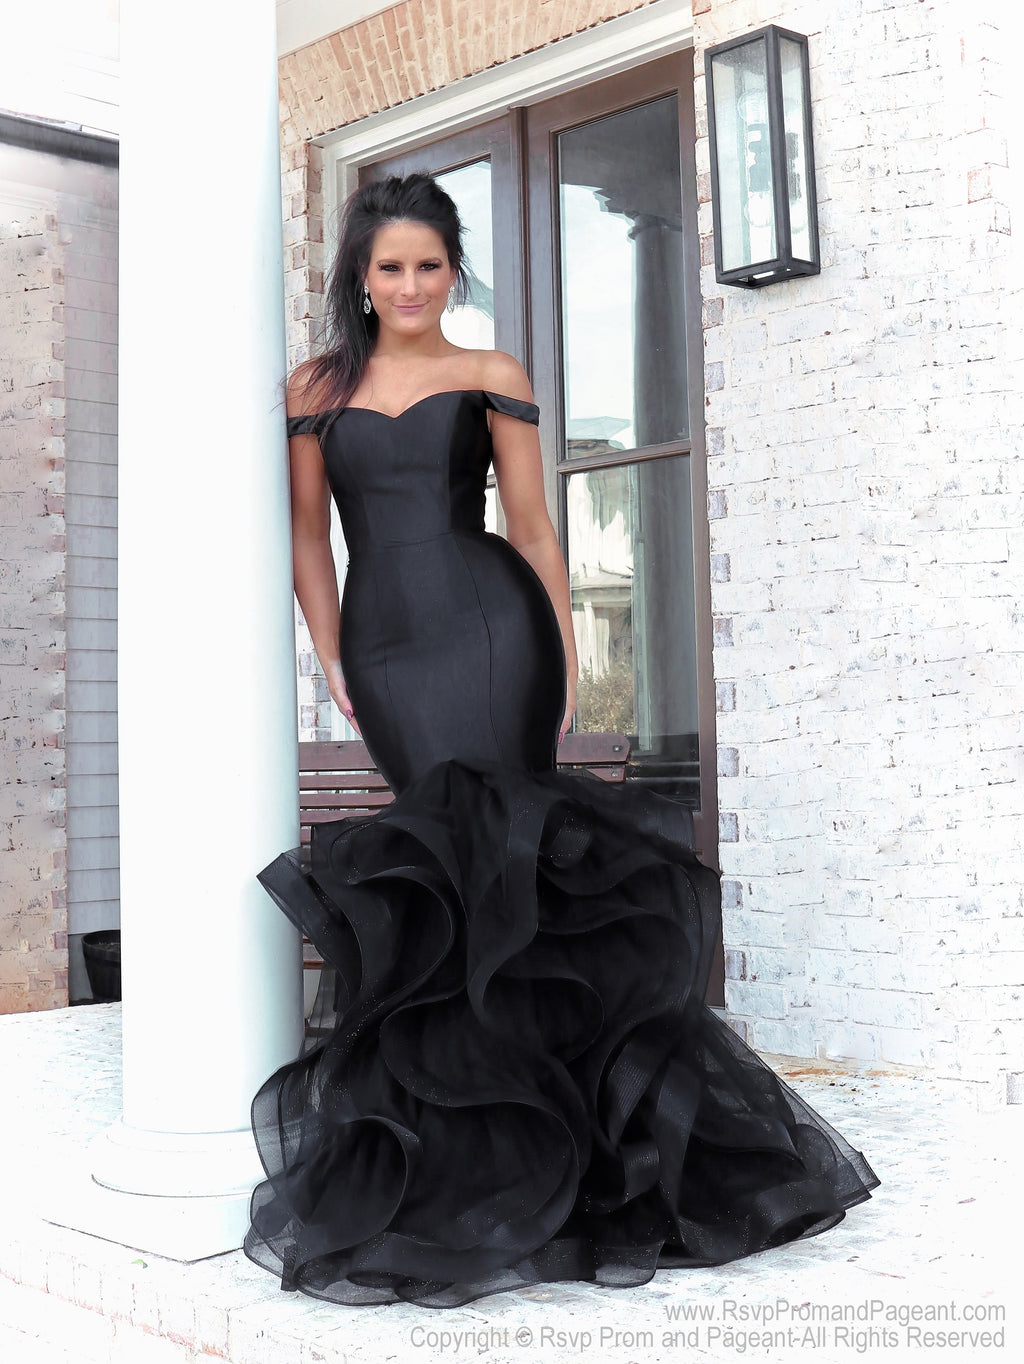 Beautiful model lacking nothing in style in this black off-the-shoulder evening gown with a super sophisticated mermaid silhouette! Perfect for ALL sizes up to size 22!! And it's at Rsvp Prom and Pageant, your source for the HOTTEST Prom and Pageant Dresses and exclusive evening gowns and located in Atlanta, Georgia!